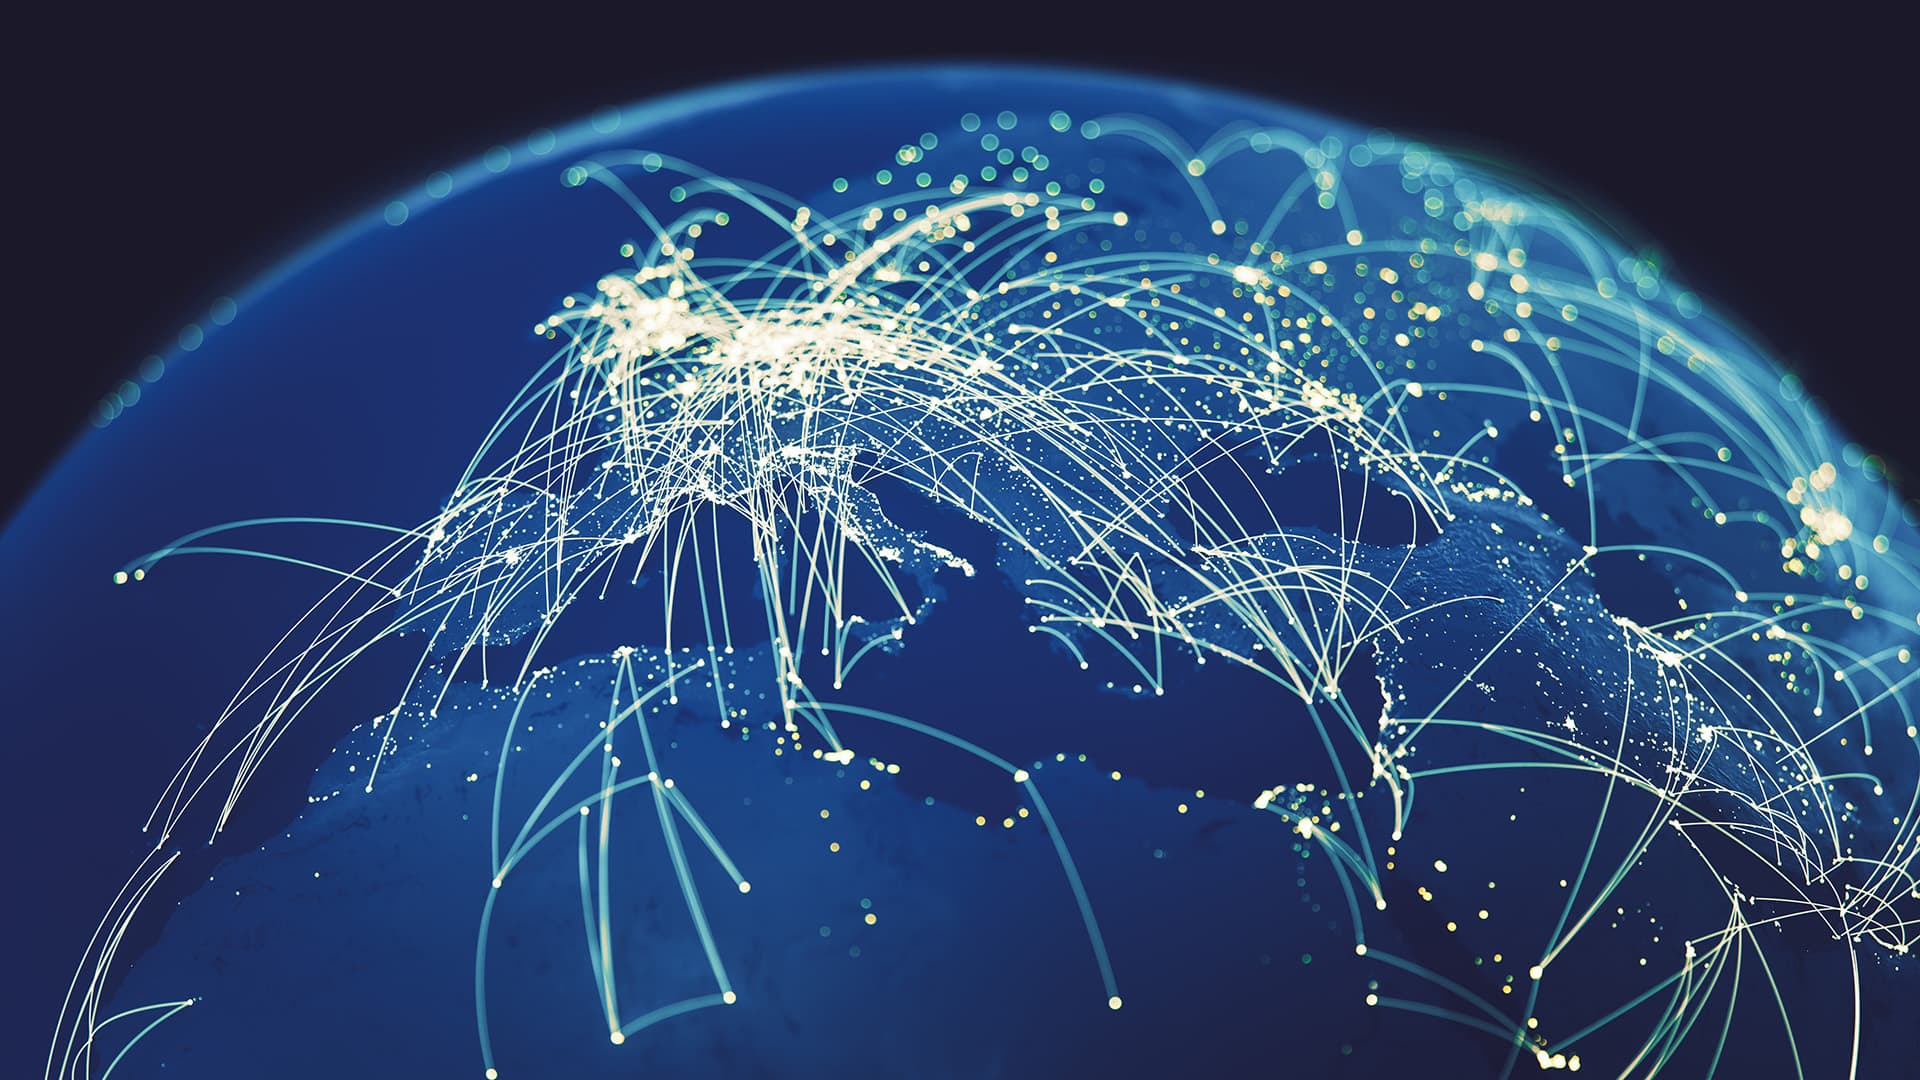 Web developer connections around the world